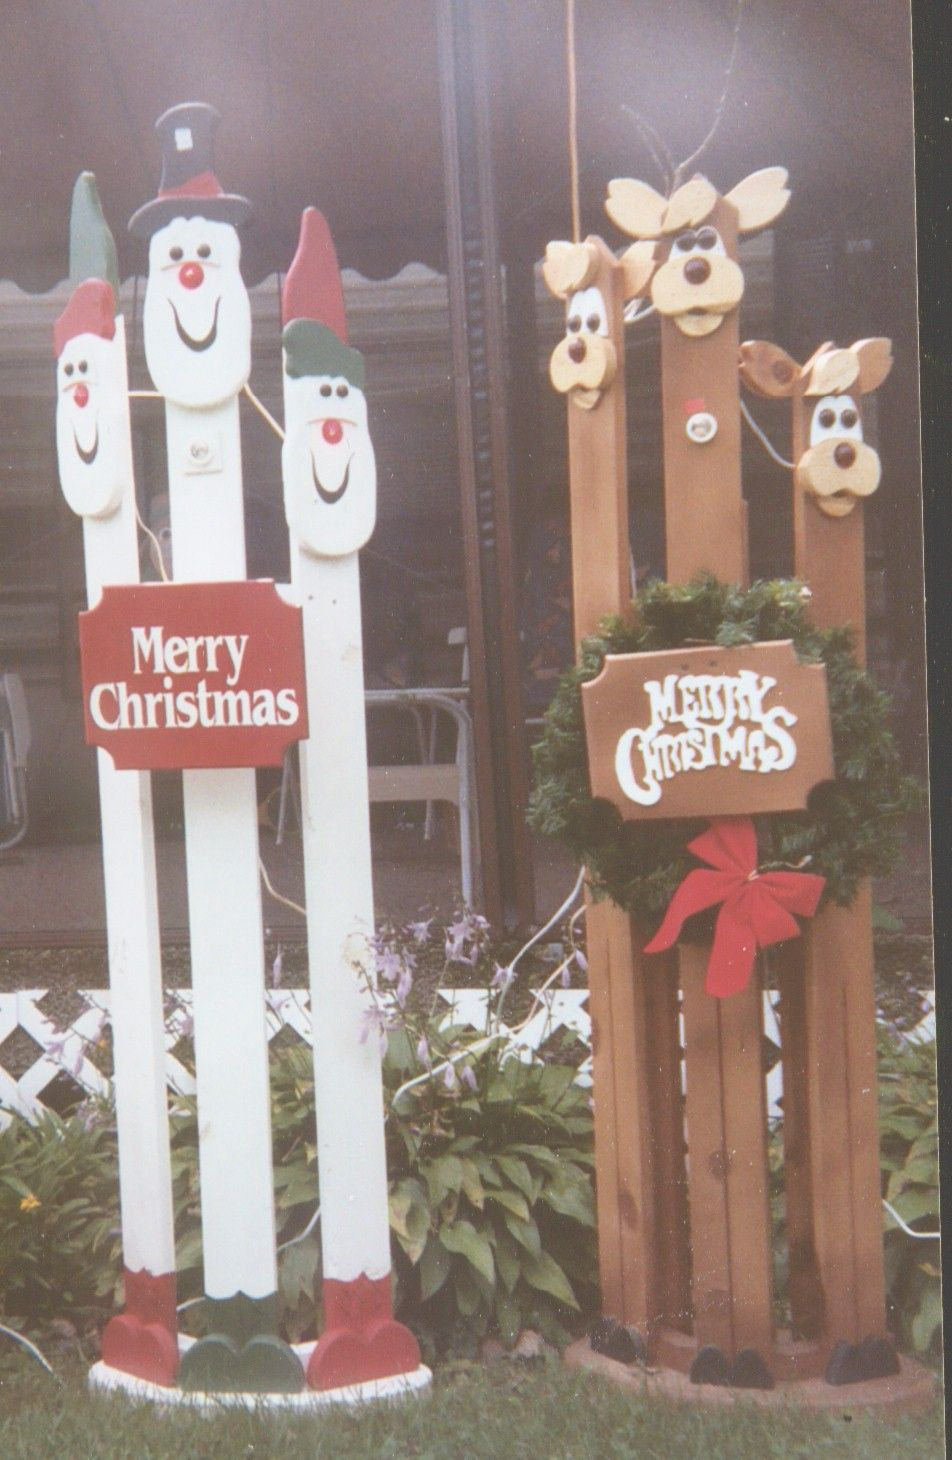 Wooden outdoor christmas decorations - Pictures Of Crafted Wooden Painted Christmas Decorations Yard Shadows Lawn